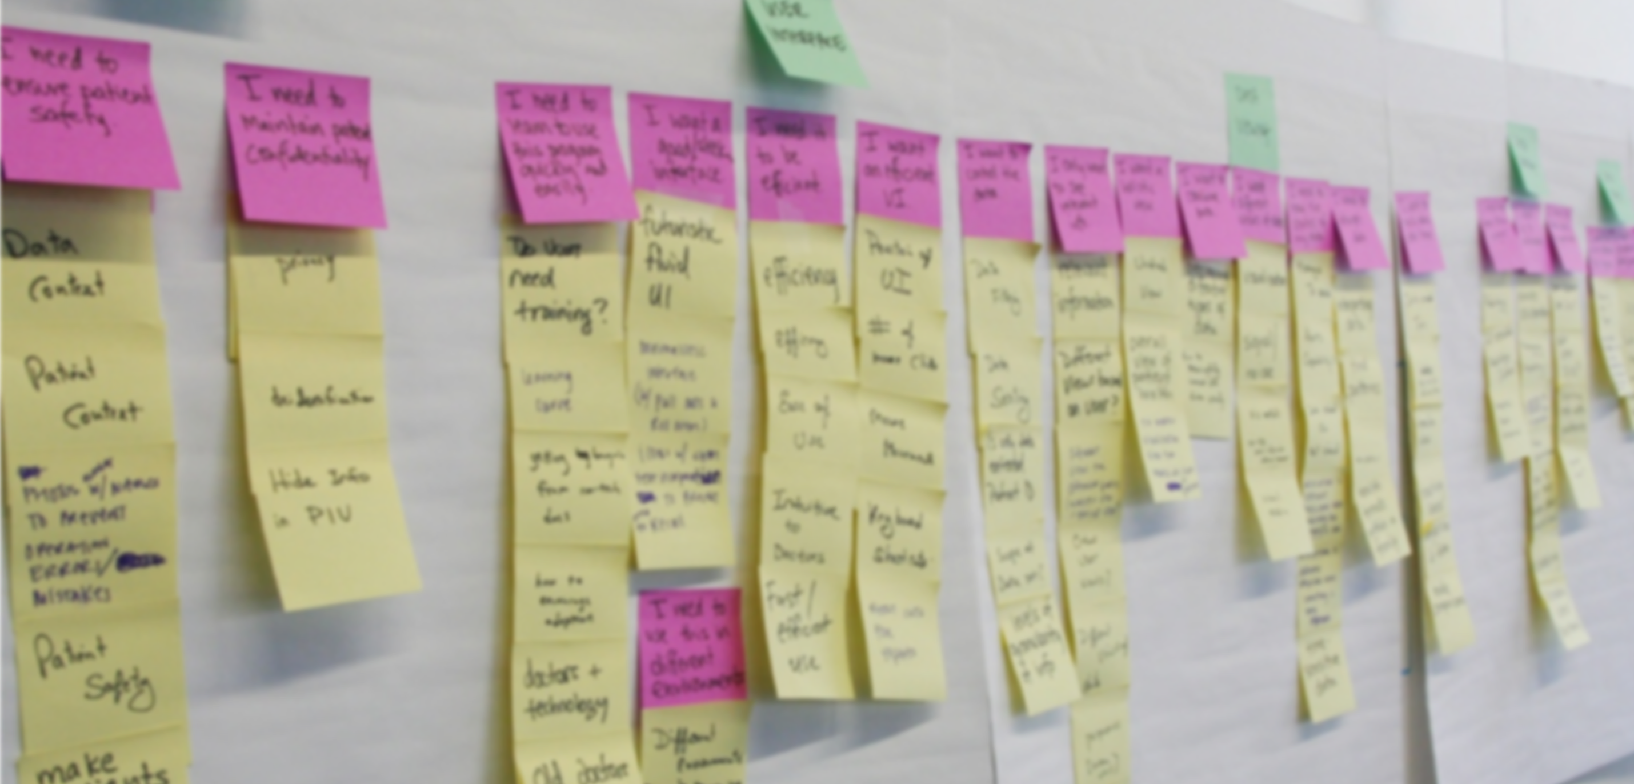 A workshop with affinity diagramming provides a way for various stakeholders to understand the project space and align various stakeholders. Everyone writes out ideas which are organized into groups to map collective thought.